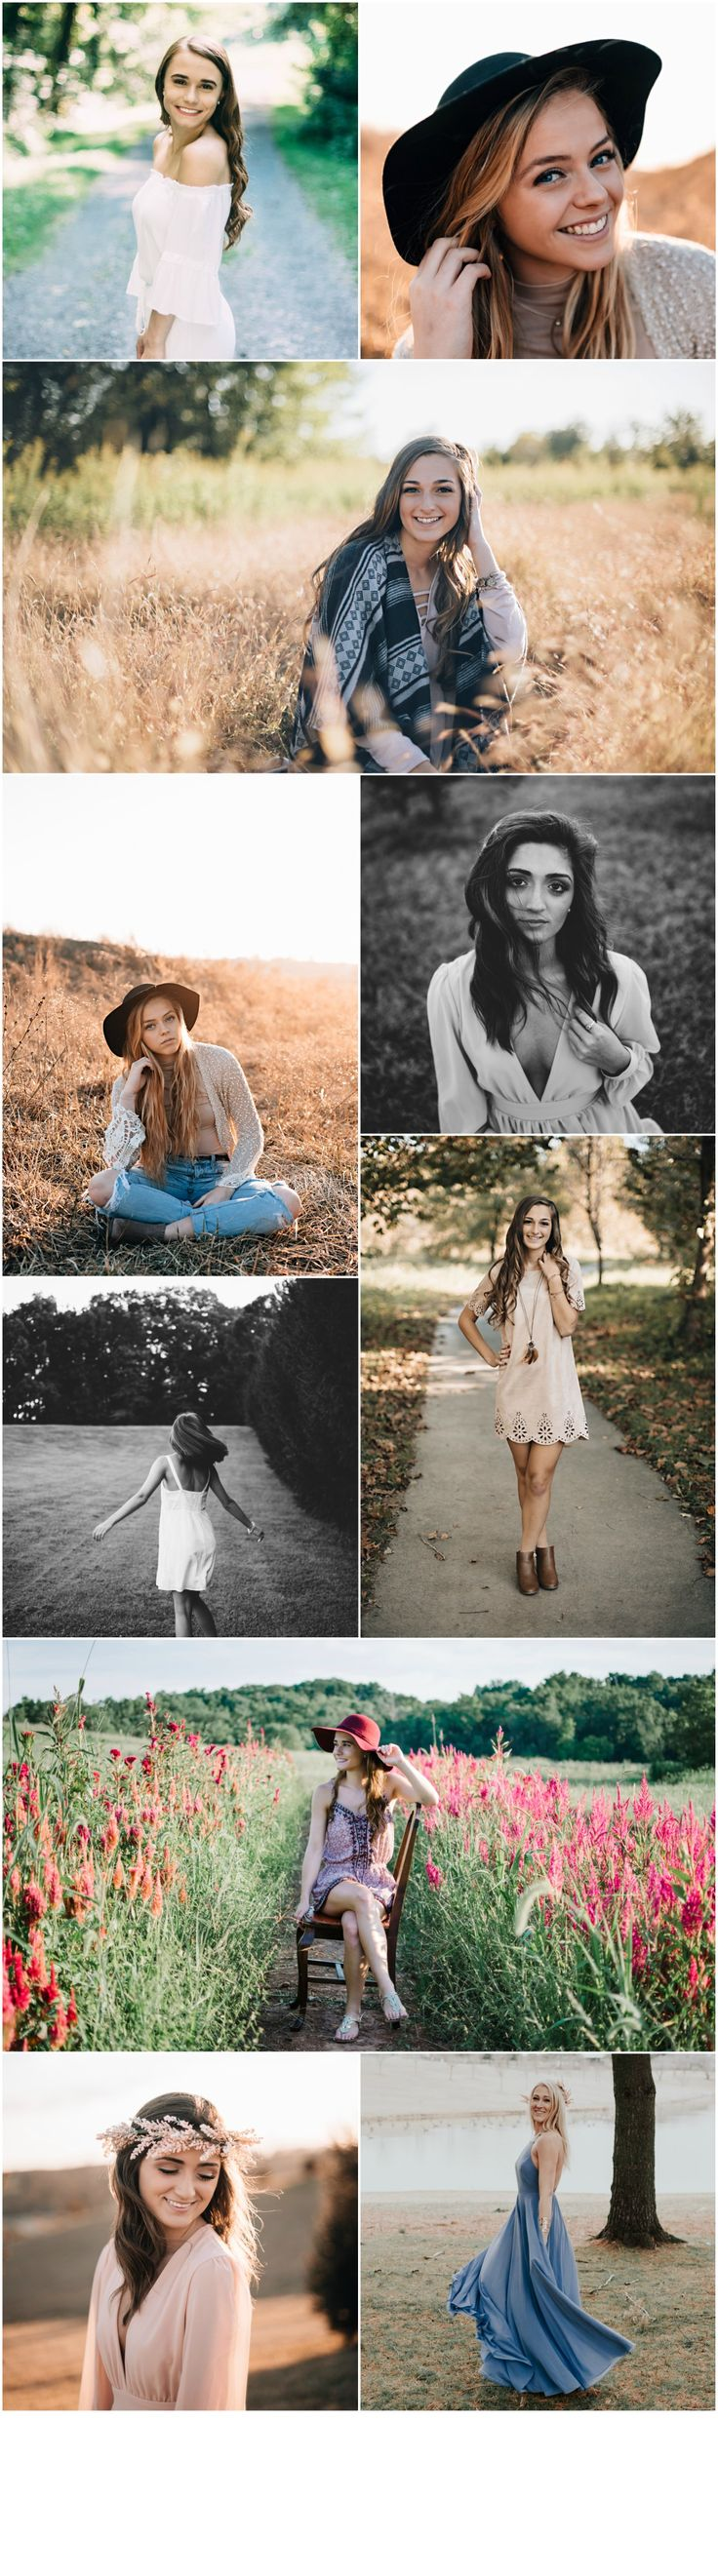 senior pictures, senior portraits, senior portrait inspiration, senior portrait outfit inspiration, maryland senior portrait photographer, maryland's top senior photographer, senior photography, high school seniors, senior picture ideas, senior portrait pose ideas